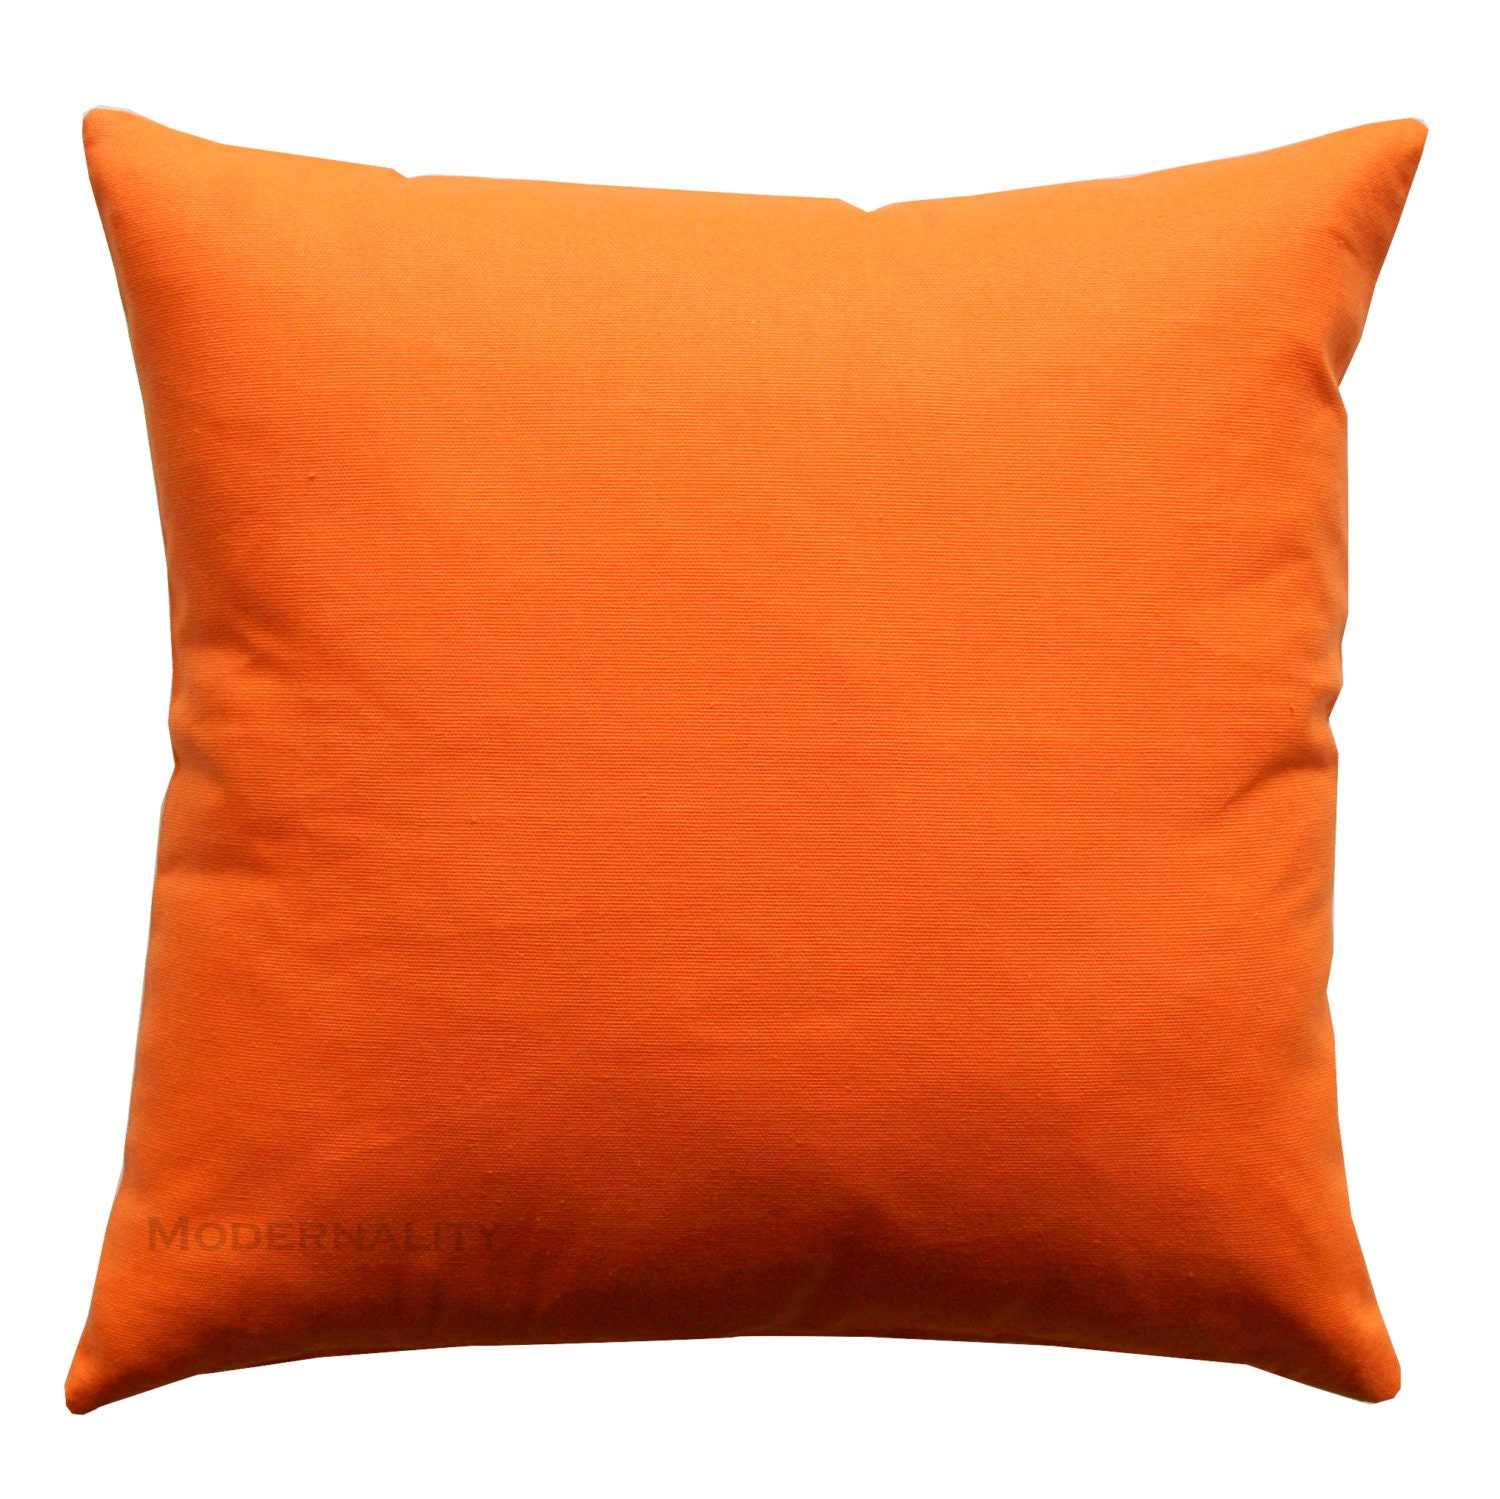 Throw Pillows With Orange : Throw Pillows Solid Mandarin Orange Pillow Cover Solid